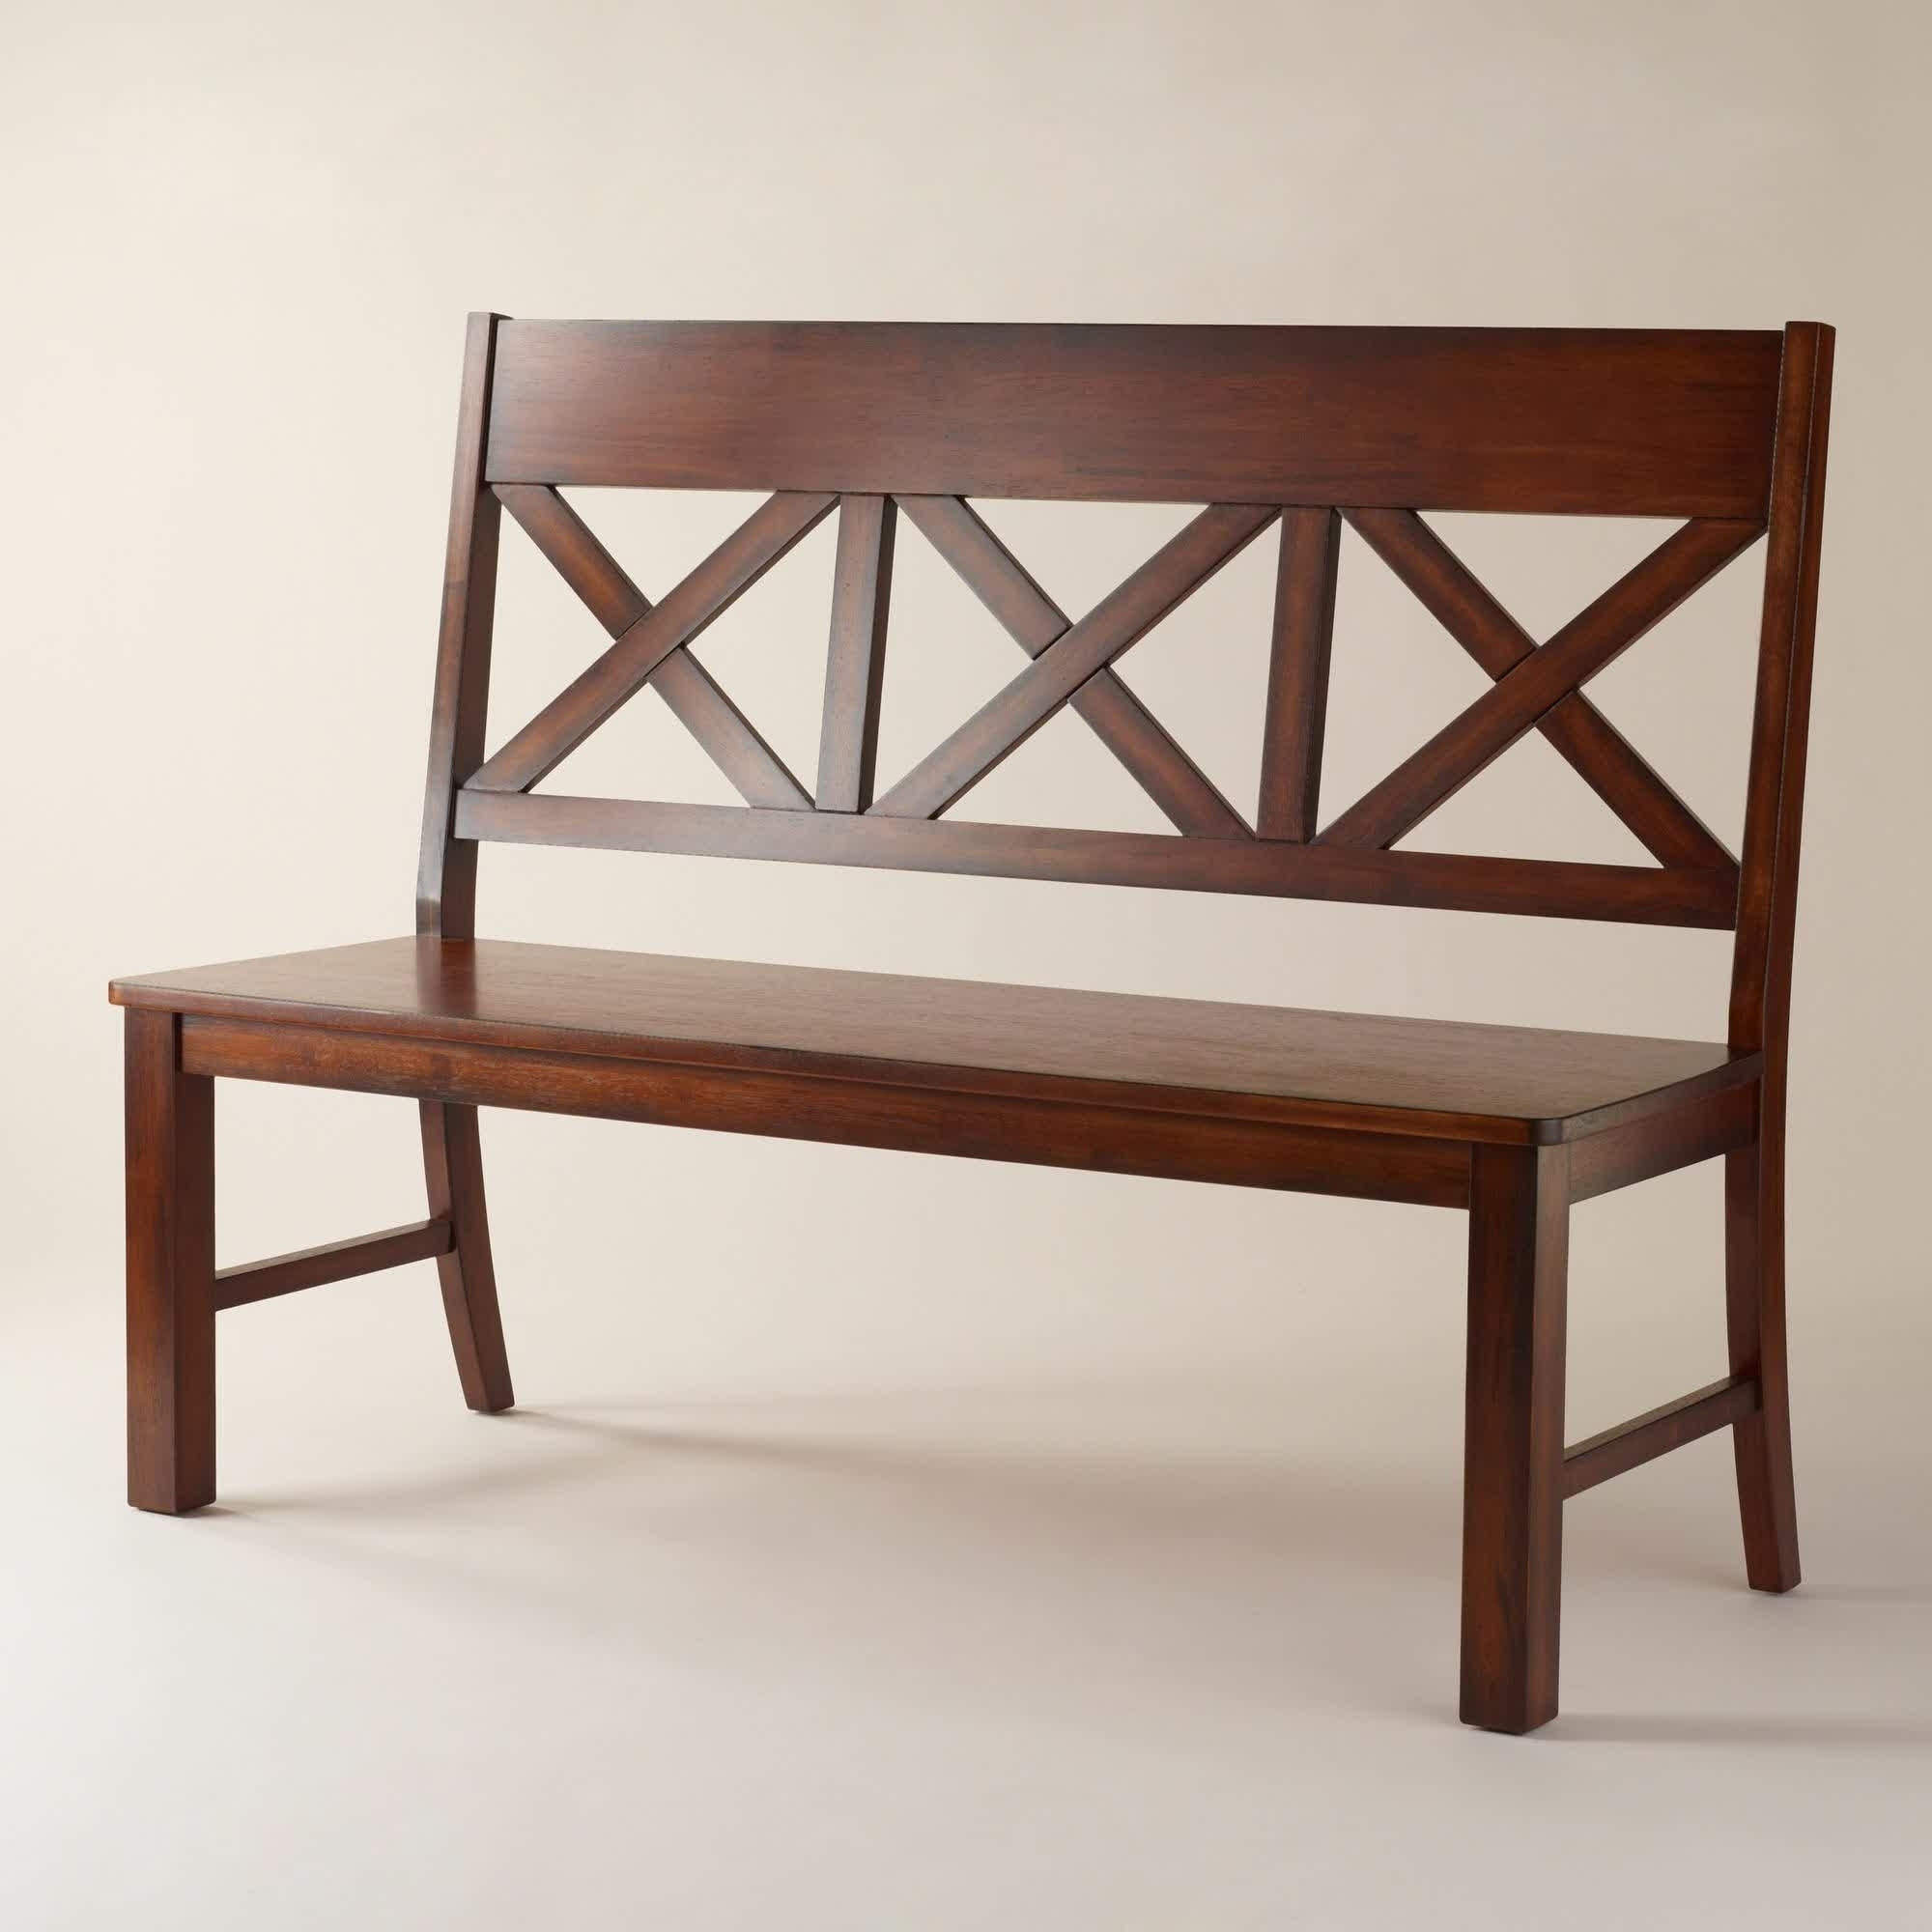 Bench In 2018 With Regard To Popular Bench With Back For Dining Tables (View 15 of 25)